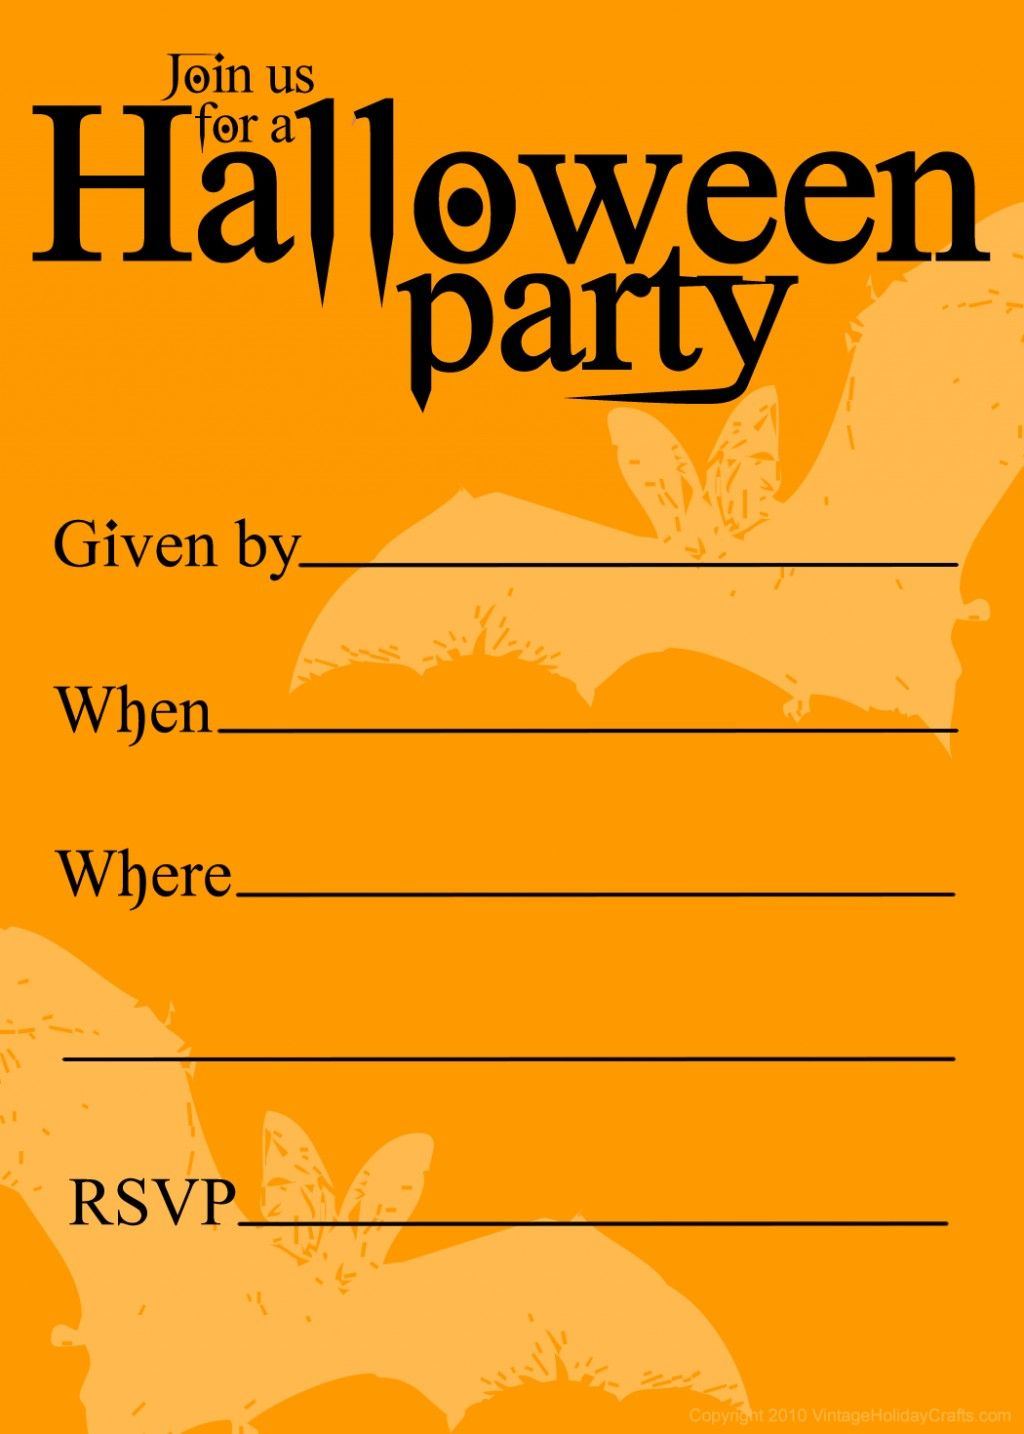 Free Printable Halloween Birthday Invitations Templates | Halloween - Free Printable Halloween Birthday Party Invitations